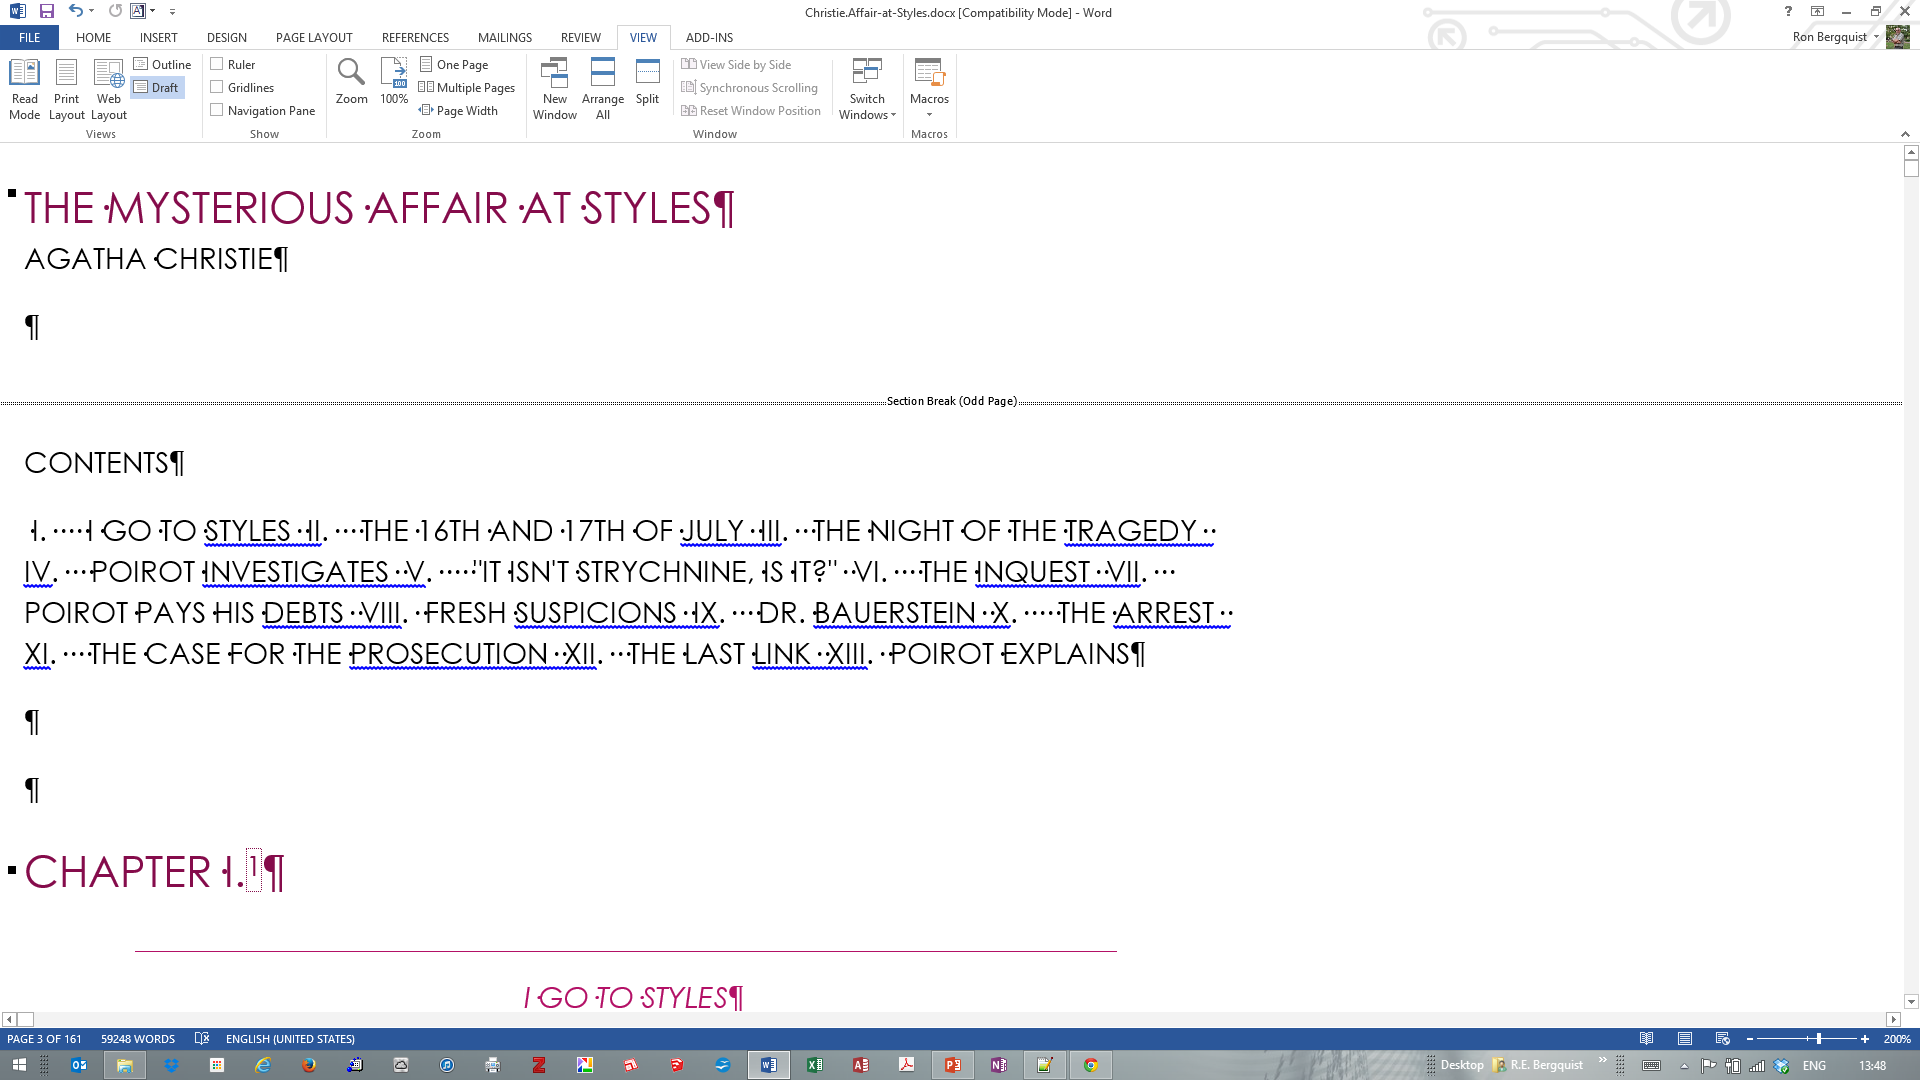 [MSWord 2013 draft view with section breaks]